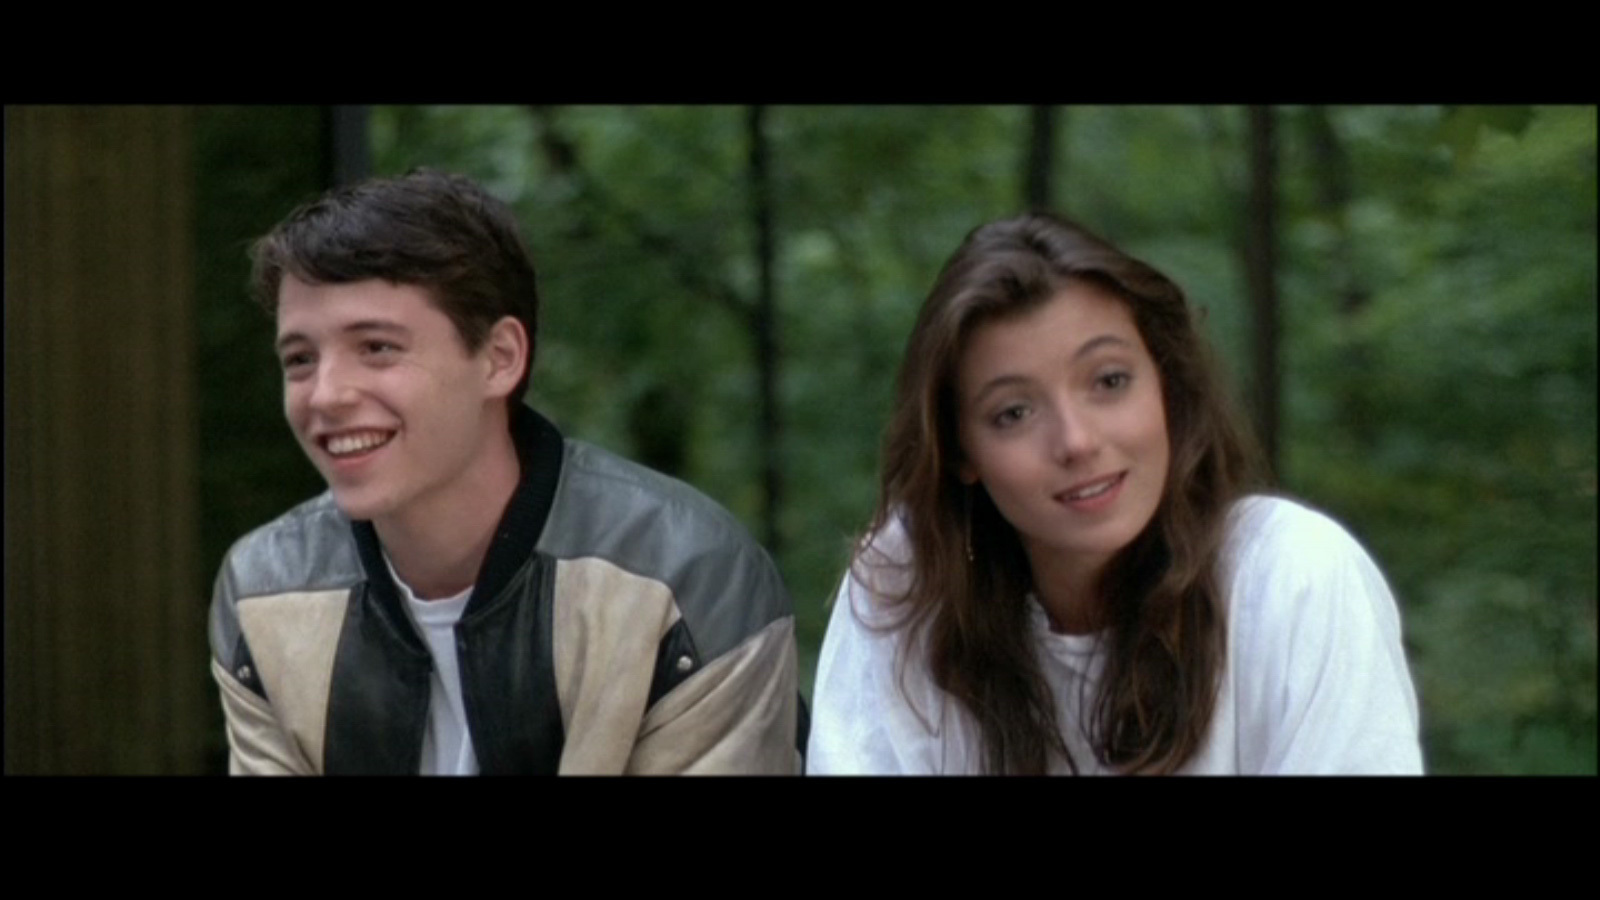 ferris buellers day off essay This year marks the thirtieth year anniversary of john hughes' coming of age  comedy ferris bueller's day off and as it transpires, most of us still.